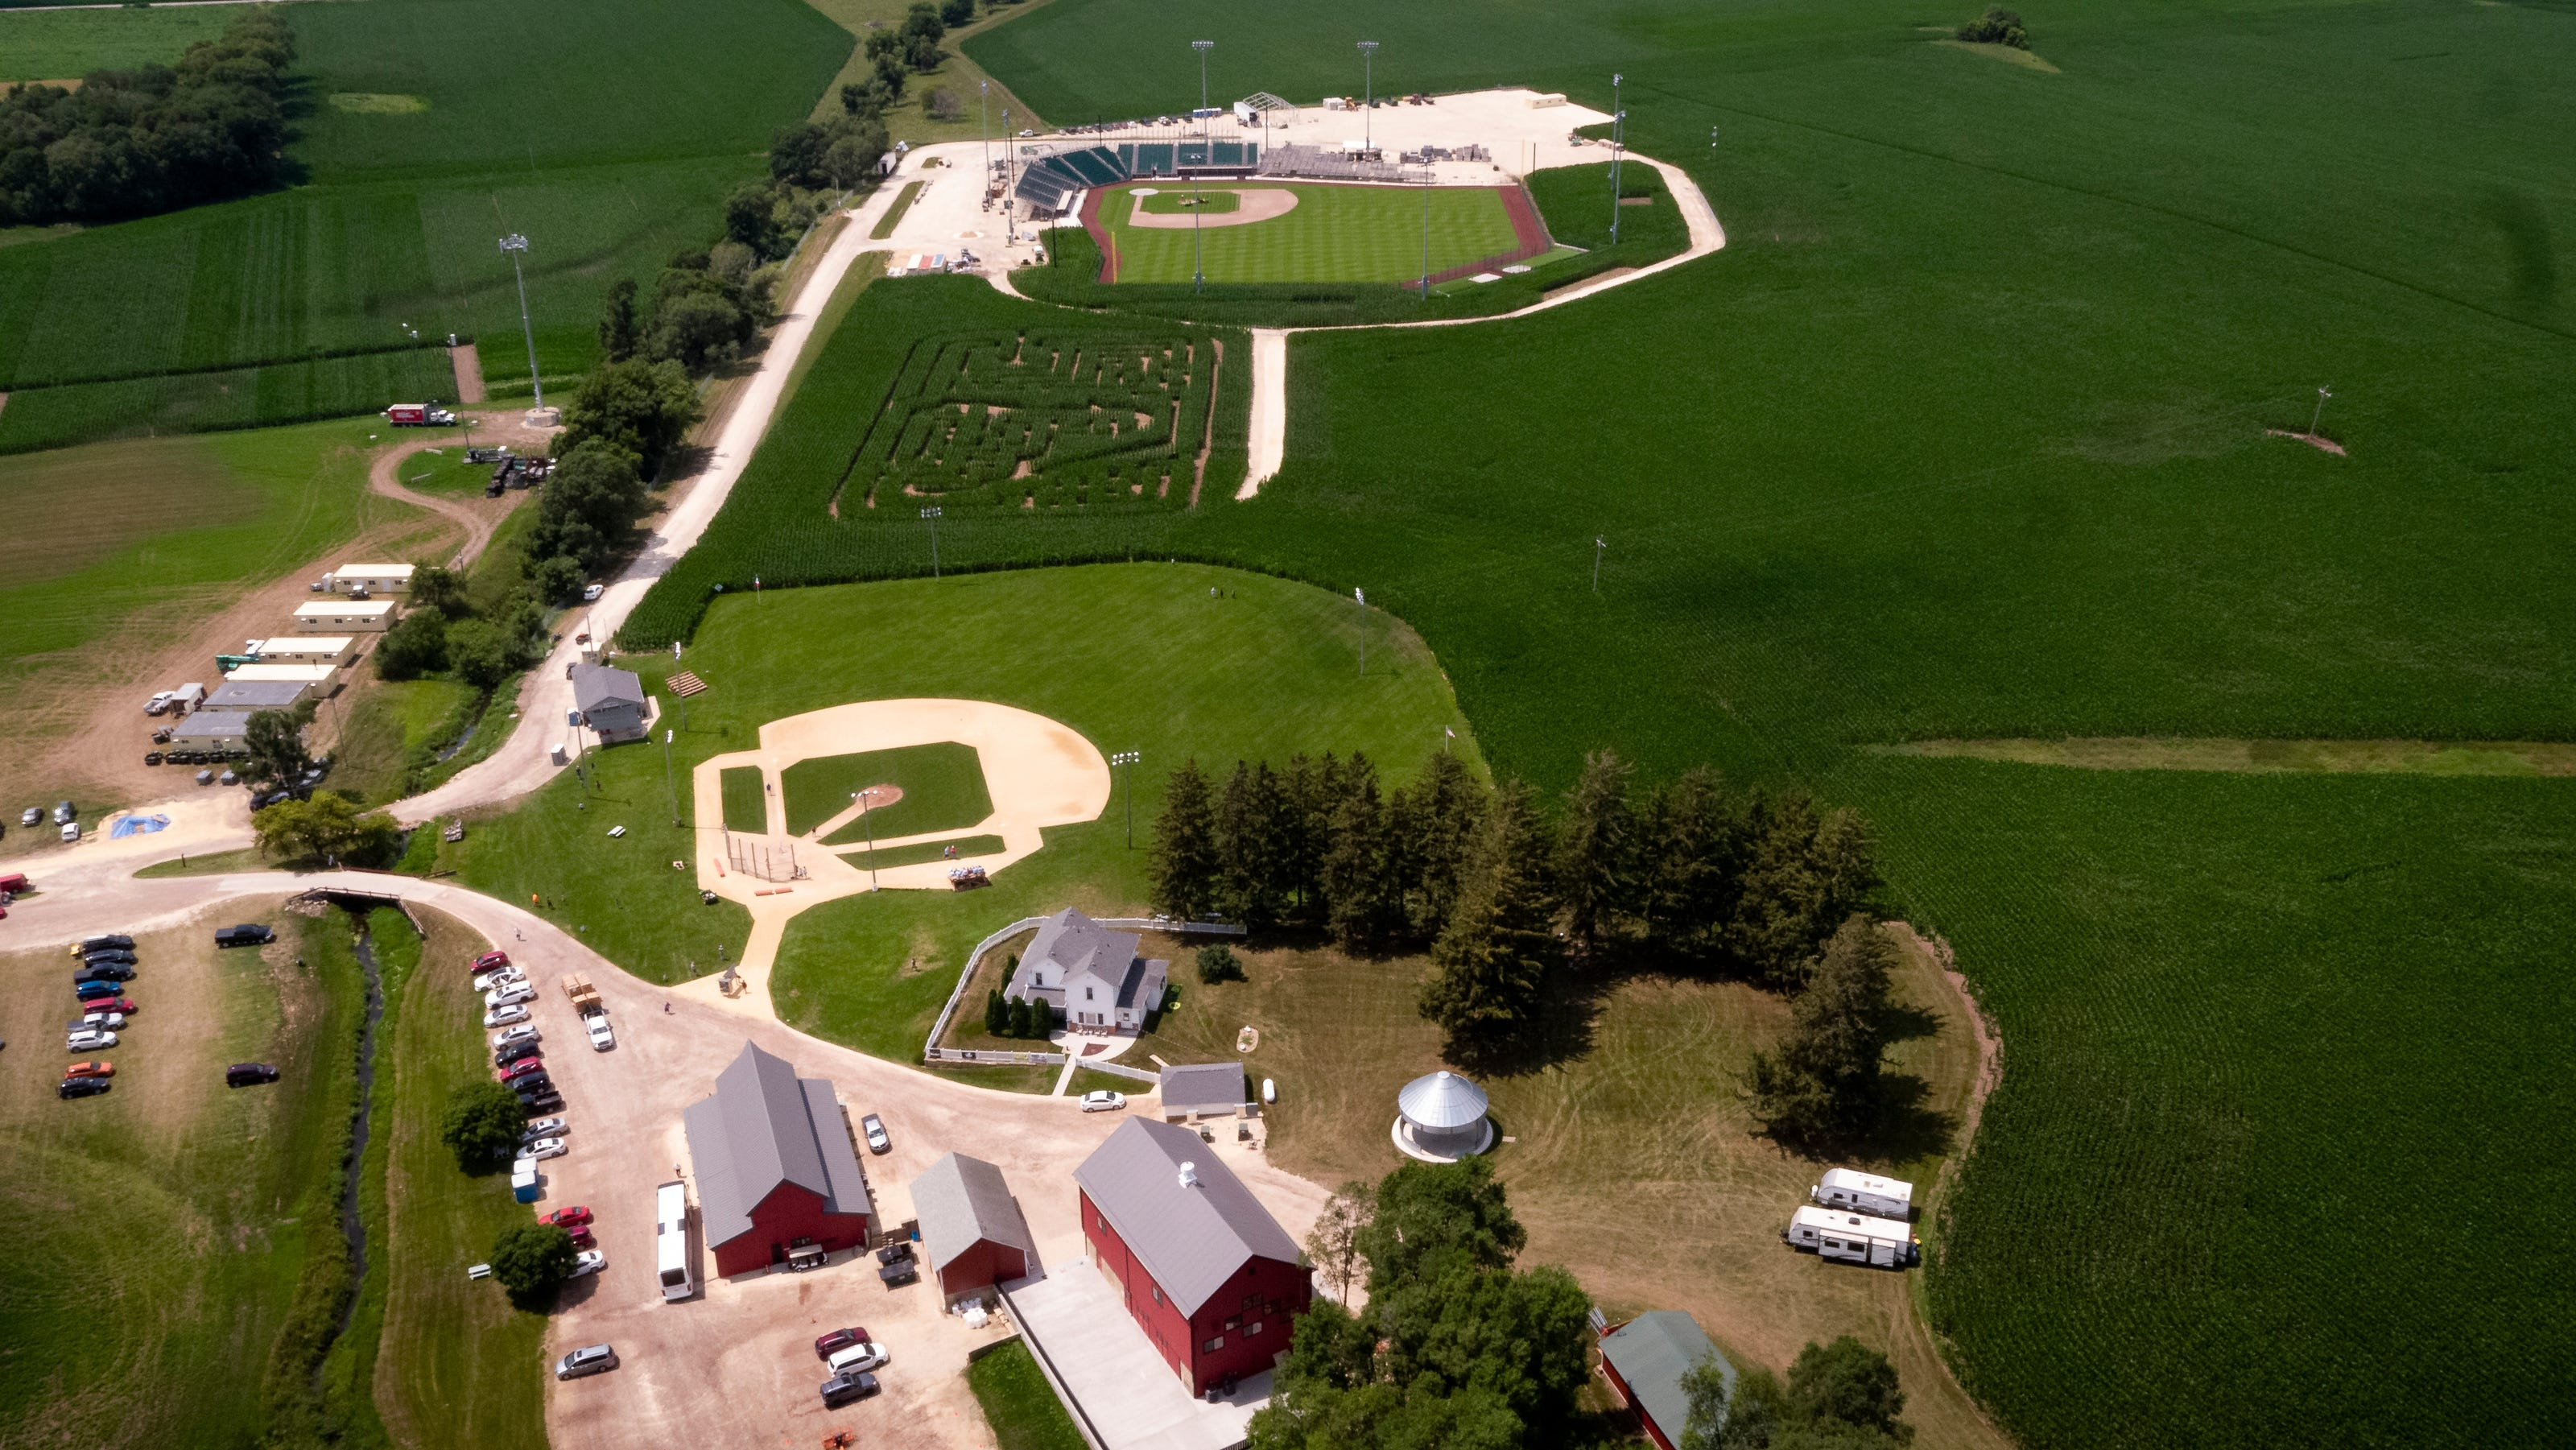 Didn't get a ticket to the Field of Dreams game? Here's where you can watch it on TV